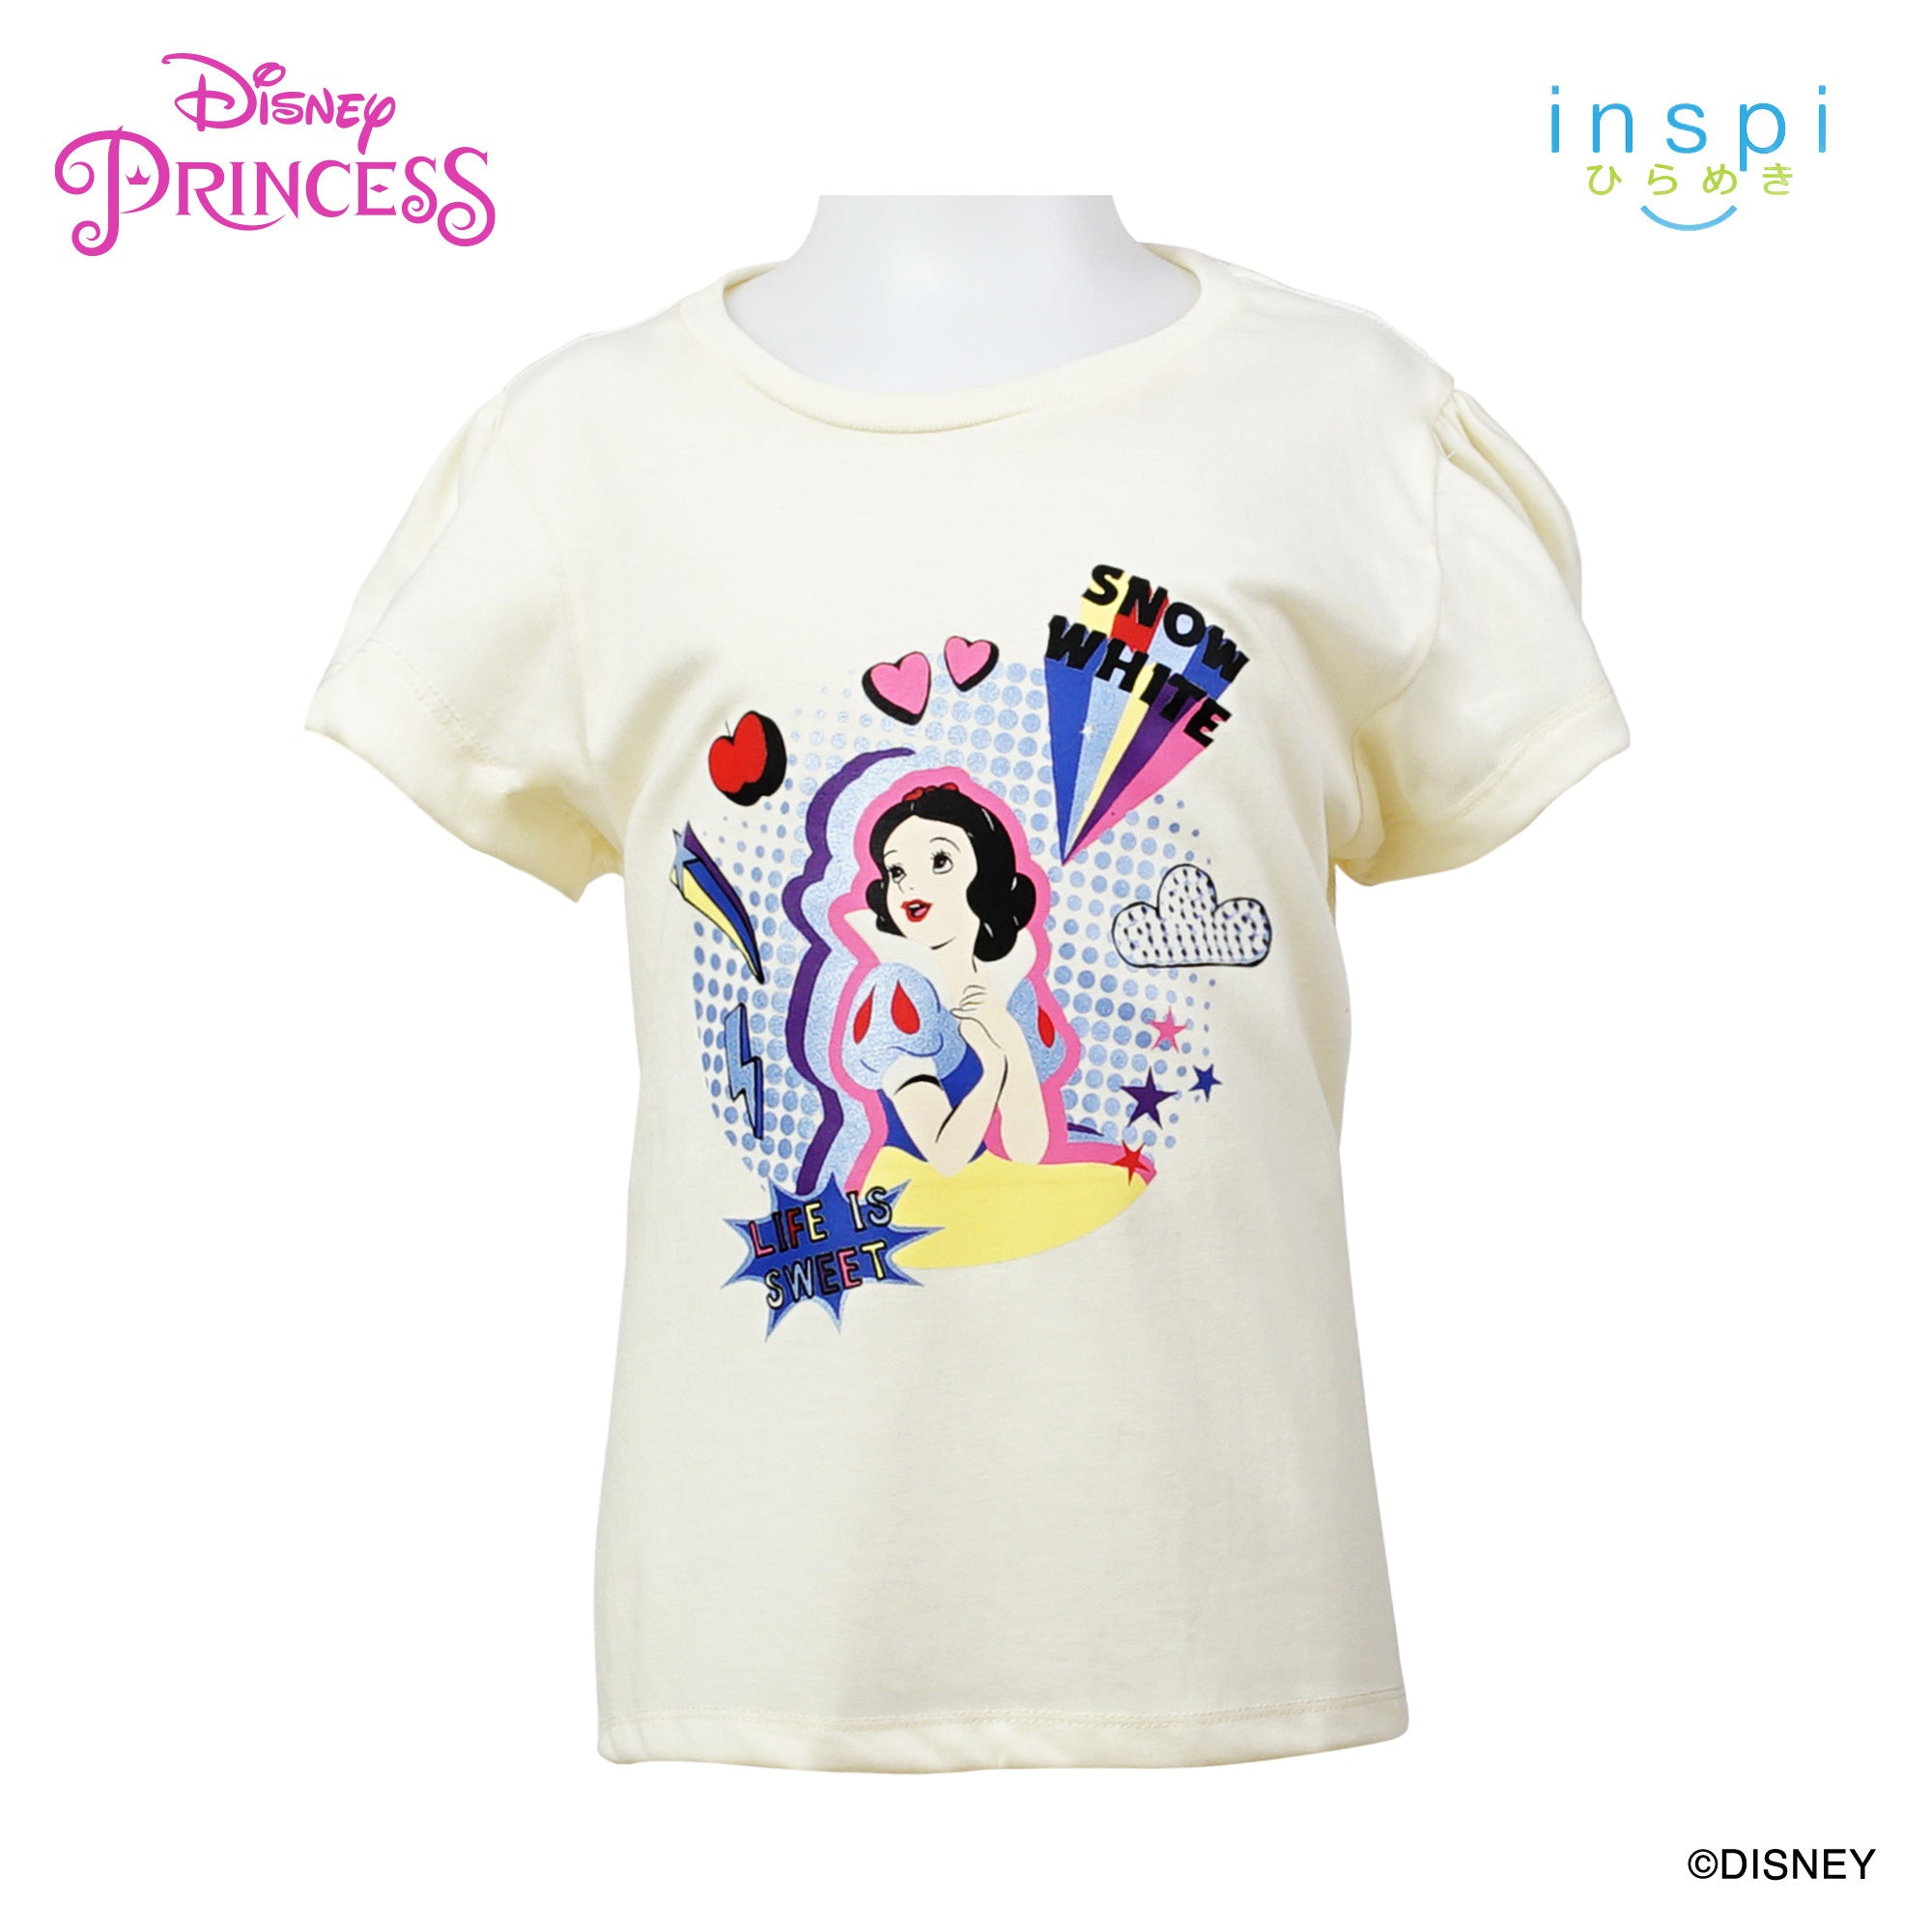 Disney Princess Snow White Life is Sweet Tshirt in Creamy White for Girls Inspi Shirt